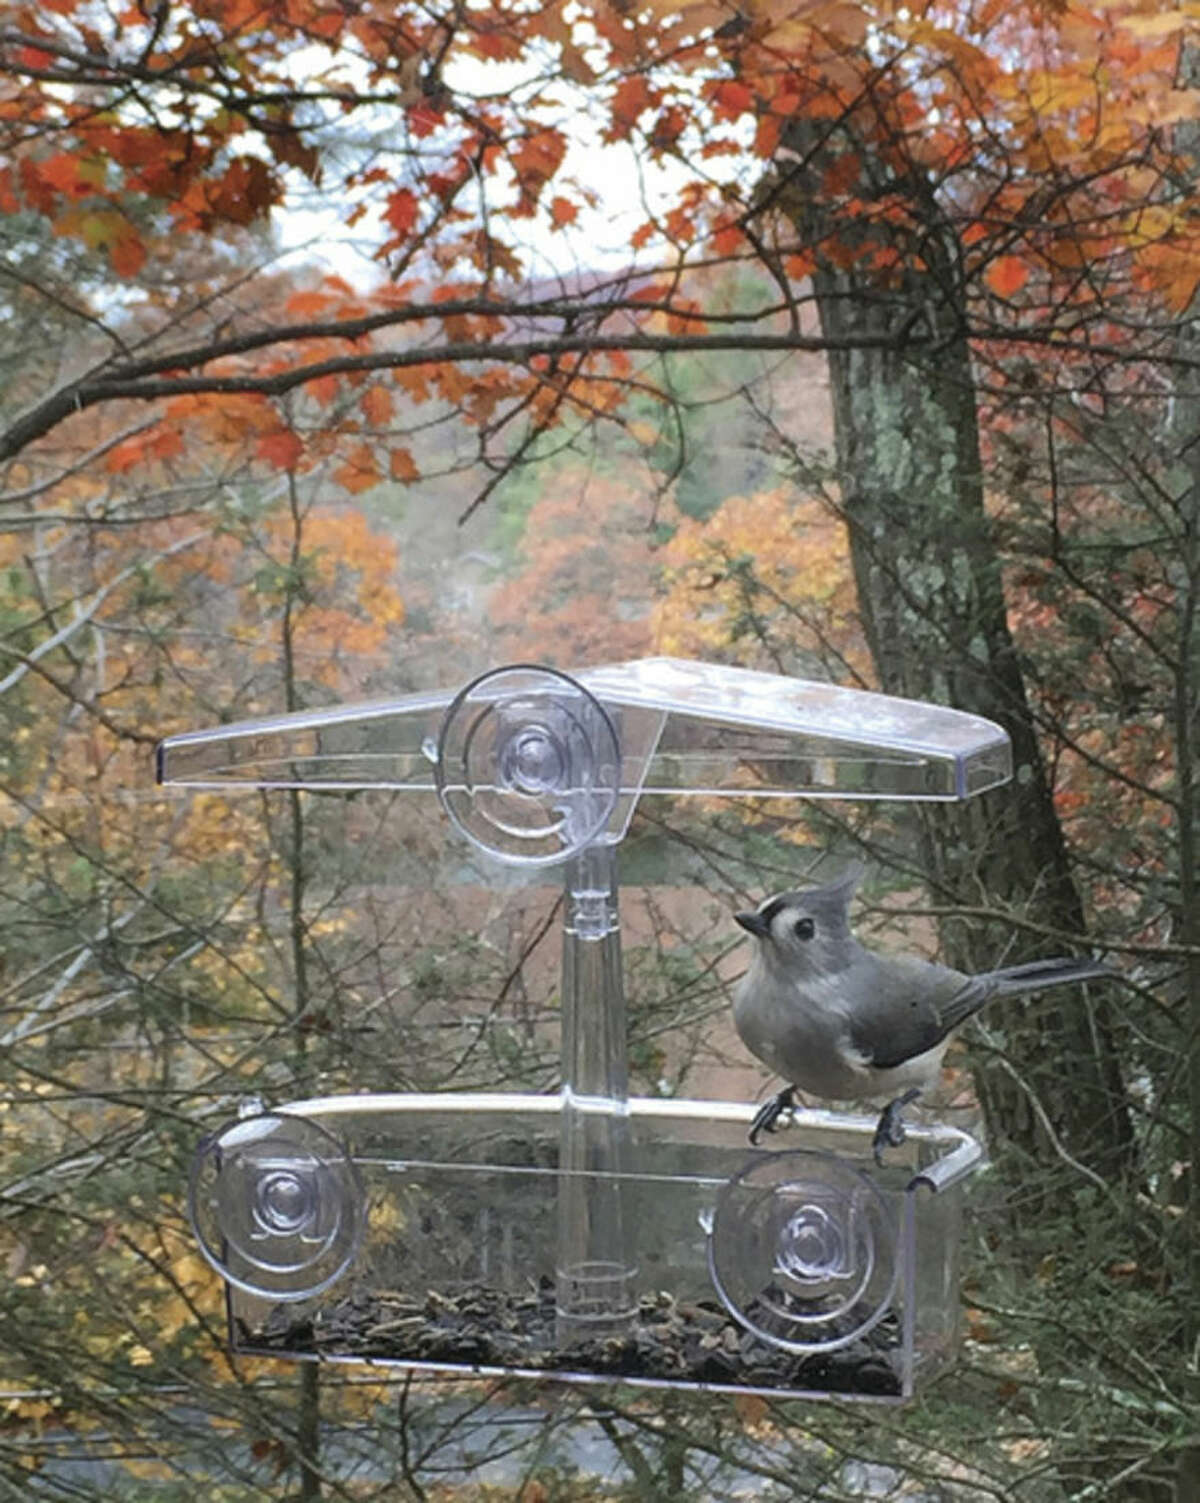 Photo by Chris Bosak A Tufted Titmouse visits a window feeder in New England.